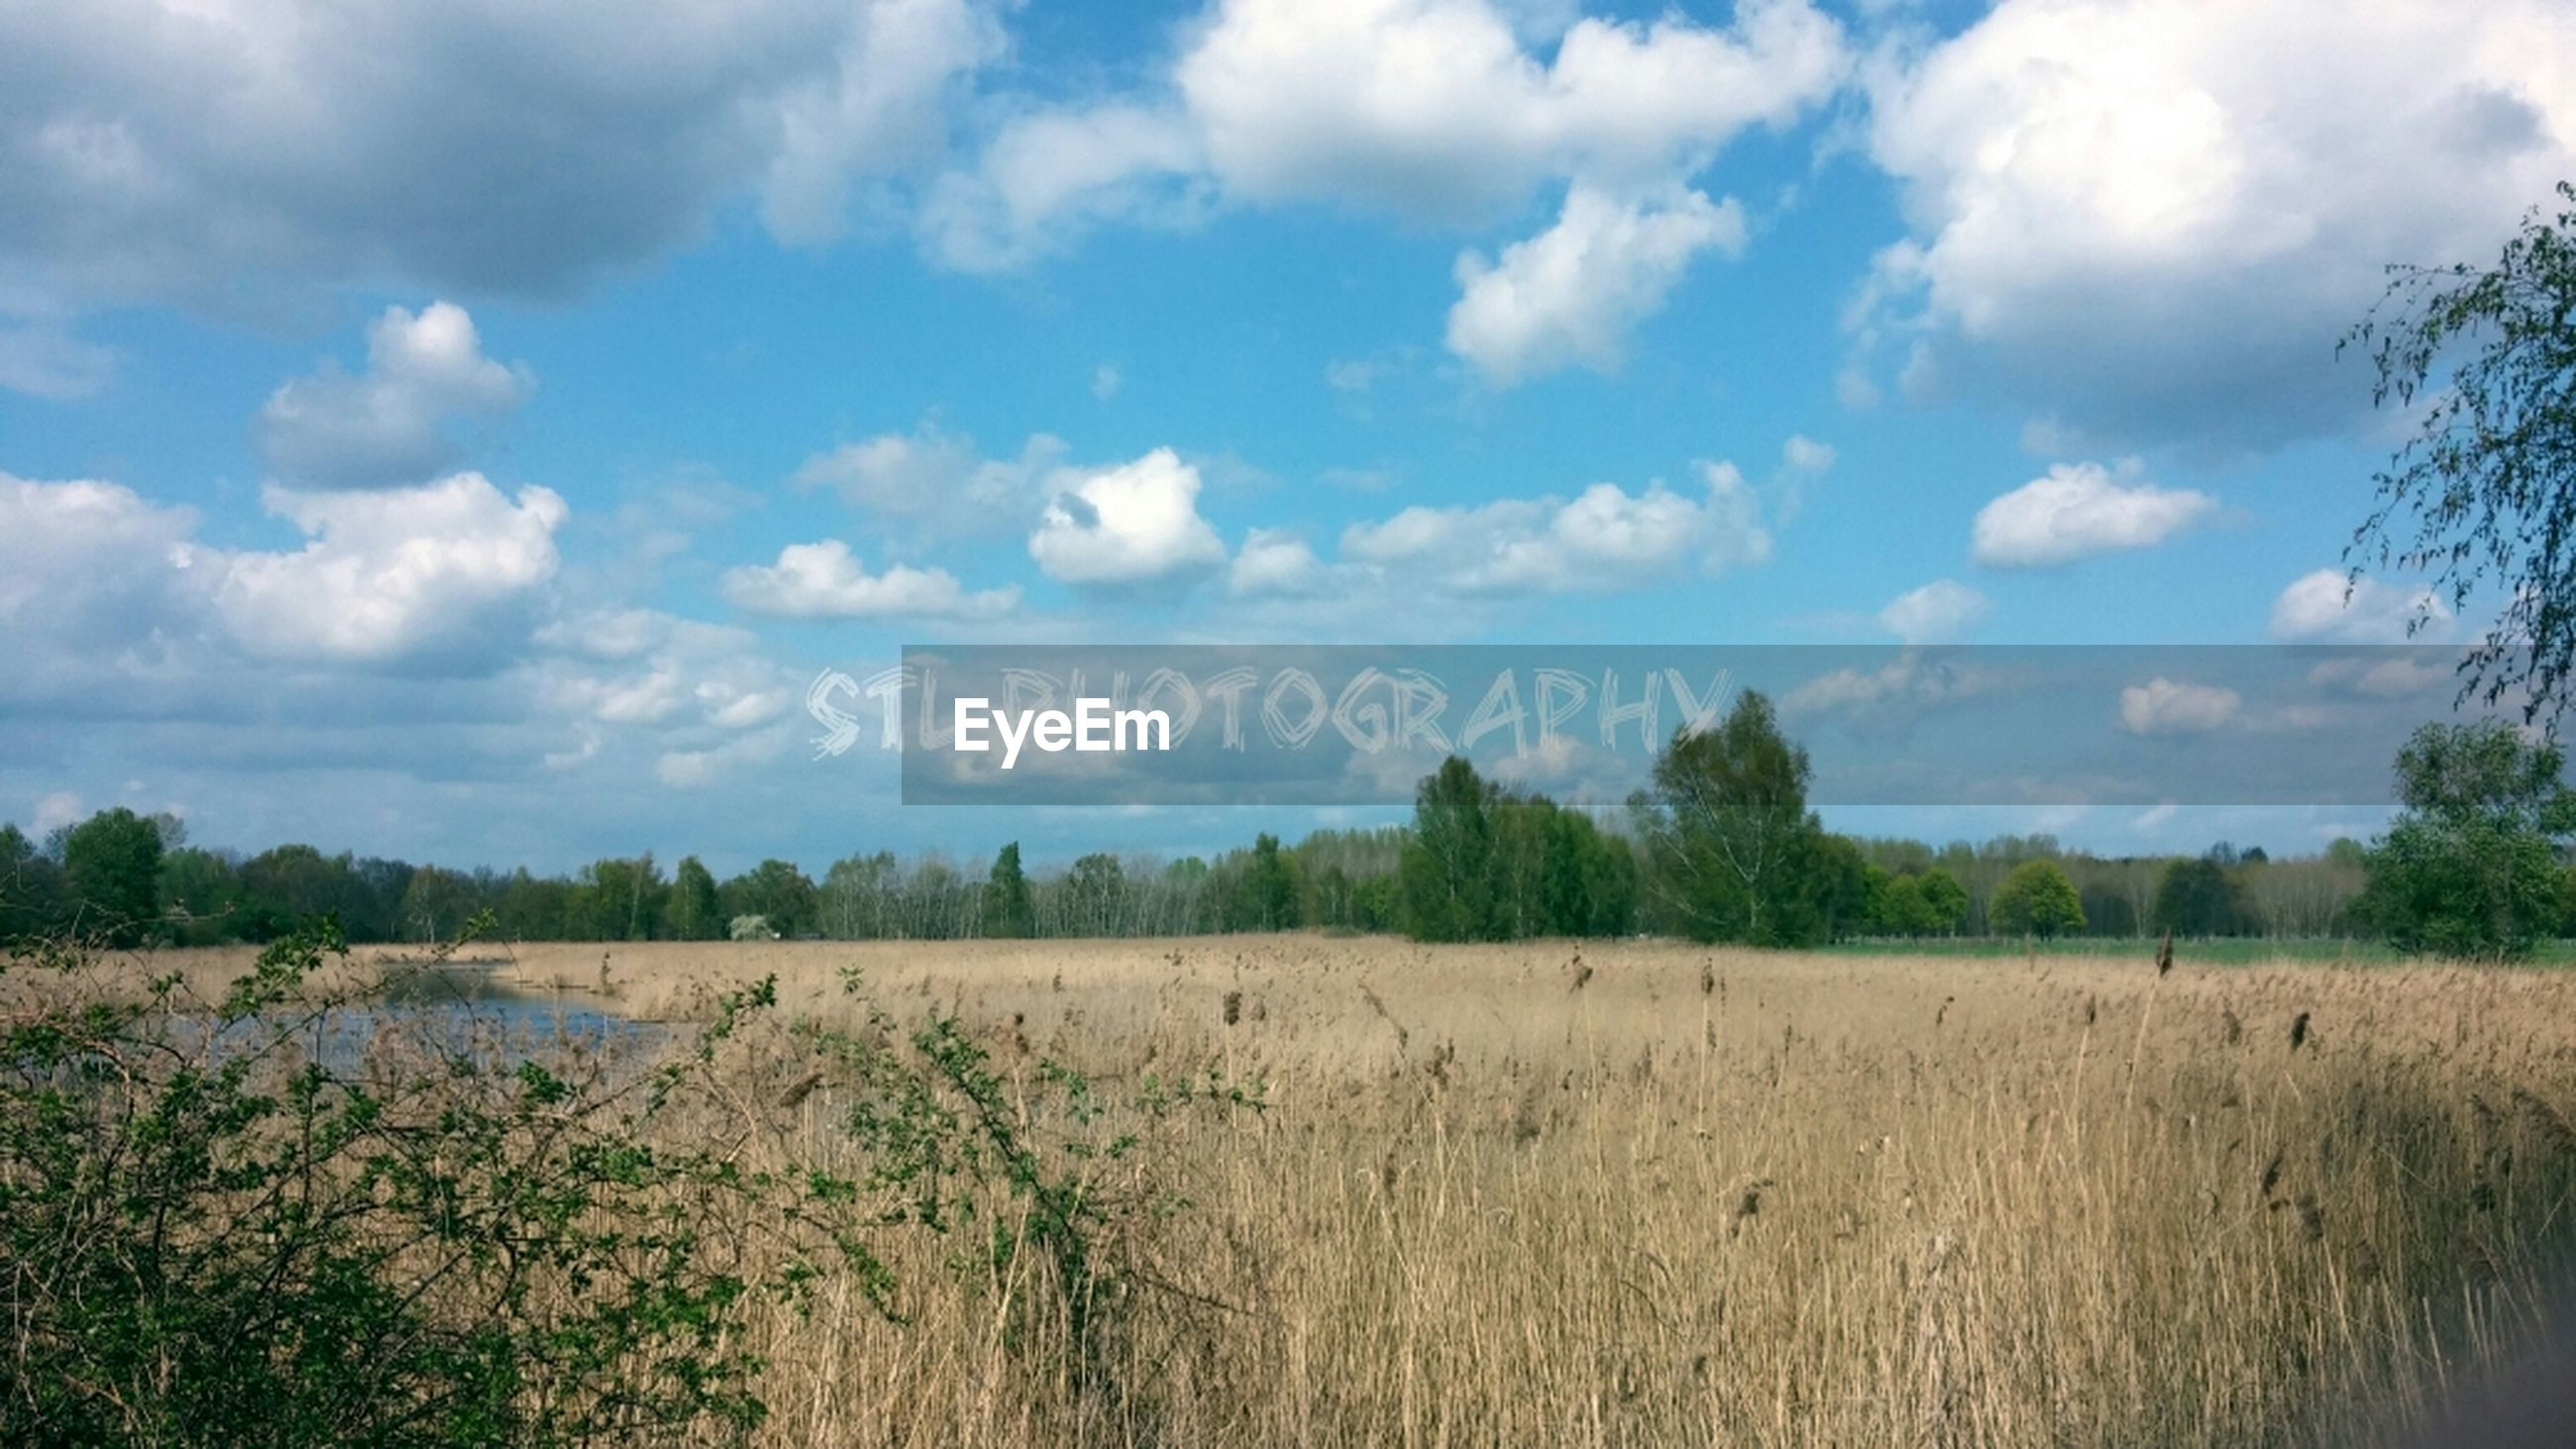 sky, tranquil scene, tranquility, cloud - sky, scenics, landscape, field, beauty in nature, cloud, grass, nature, growth, cloudy, tree, plant, rural scene, non-urban scene, idyllic, day, horizon over land